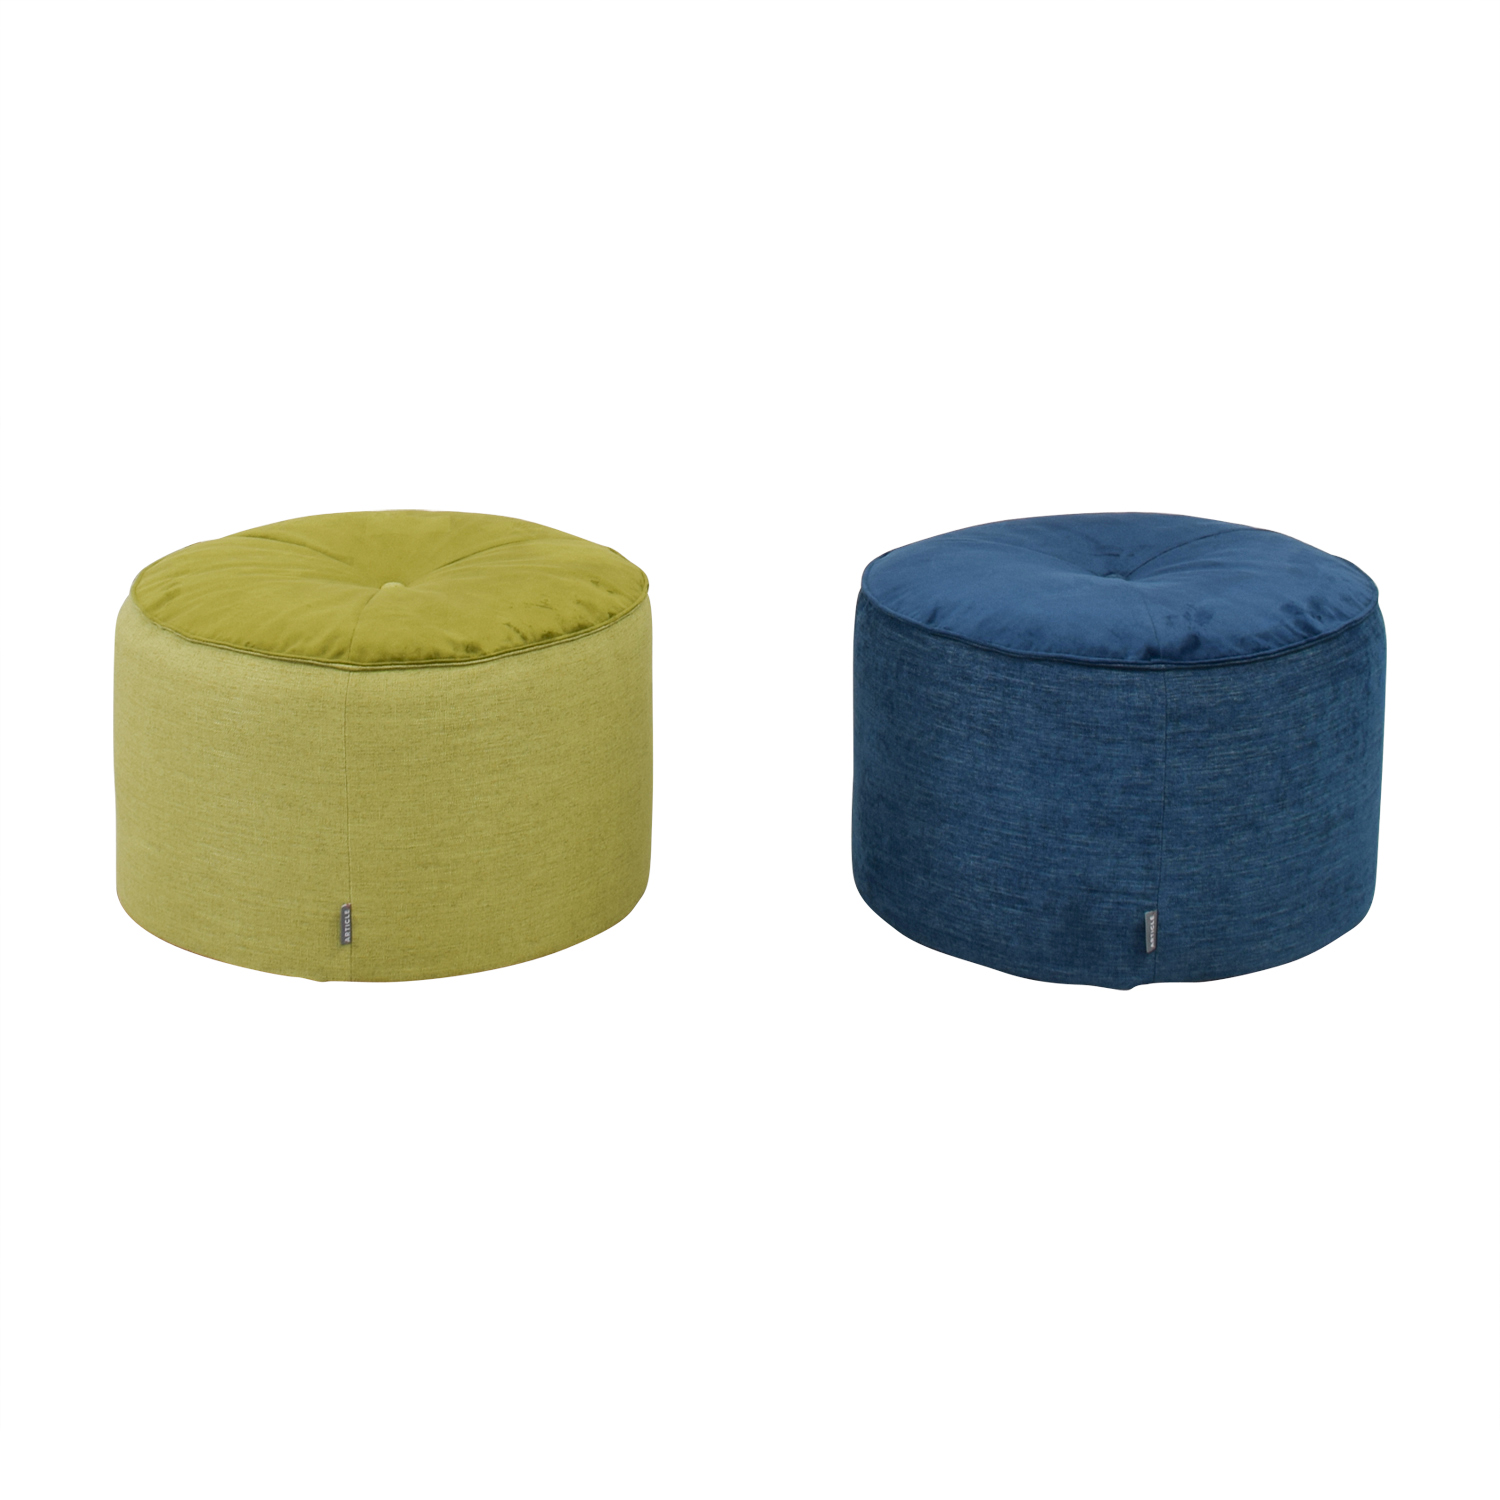 Astounding 57 Off Article Article Green And Blue Velvet And Tweed Round Pouf Ottomans Chairs Lamtechconsult Wood Chair Design Ideas Lamtechconsultcom